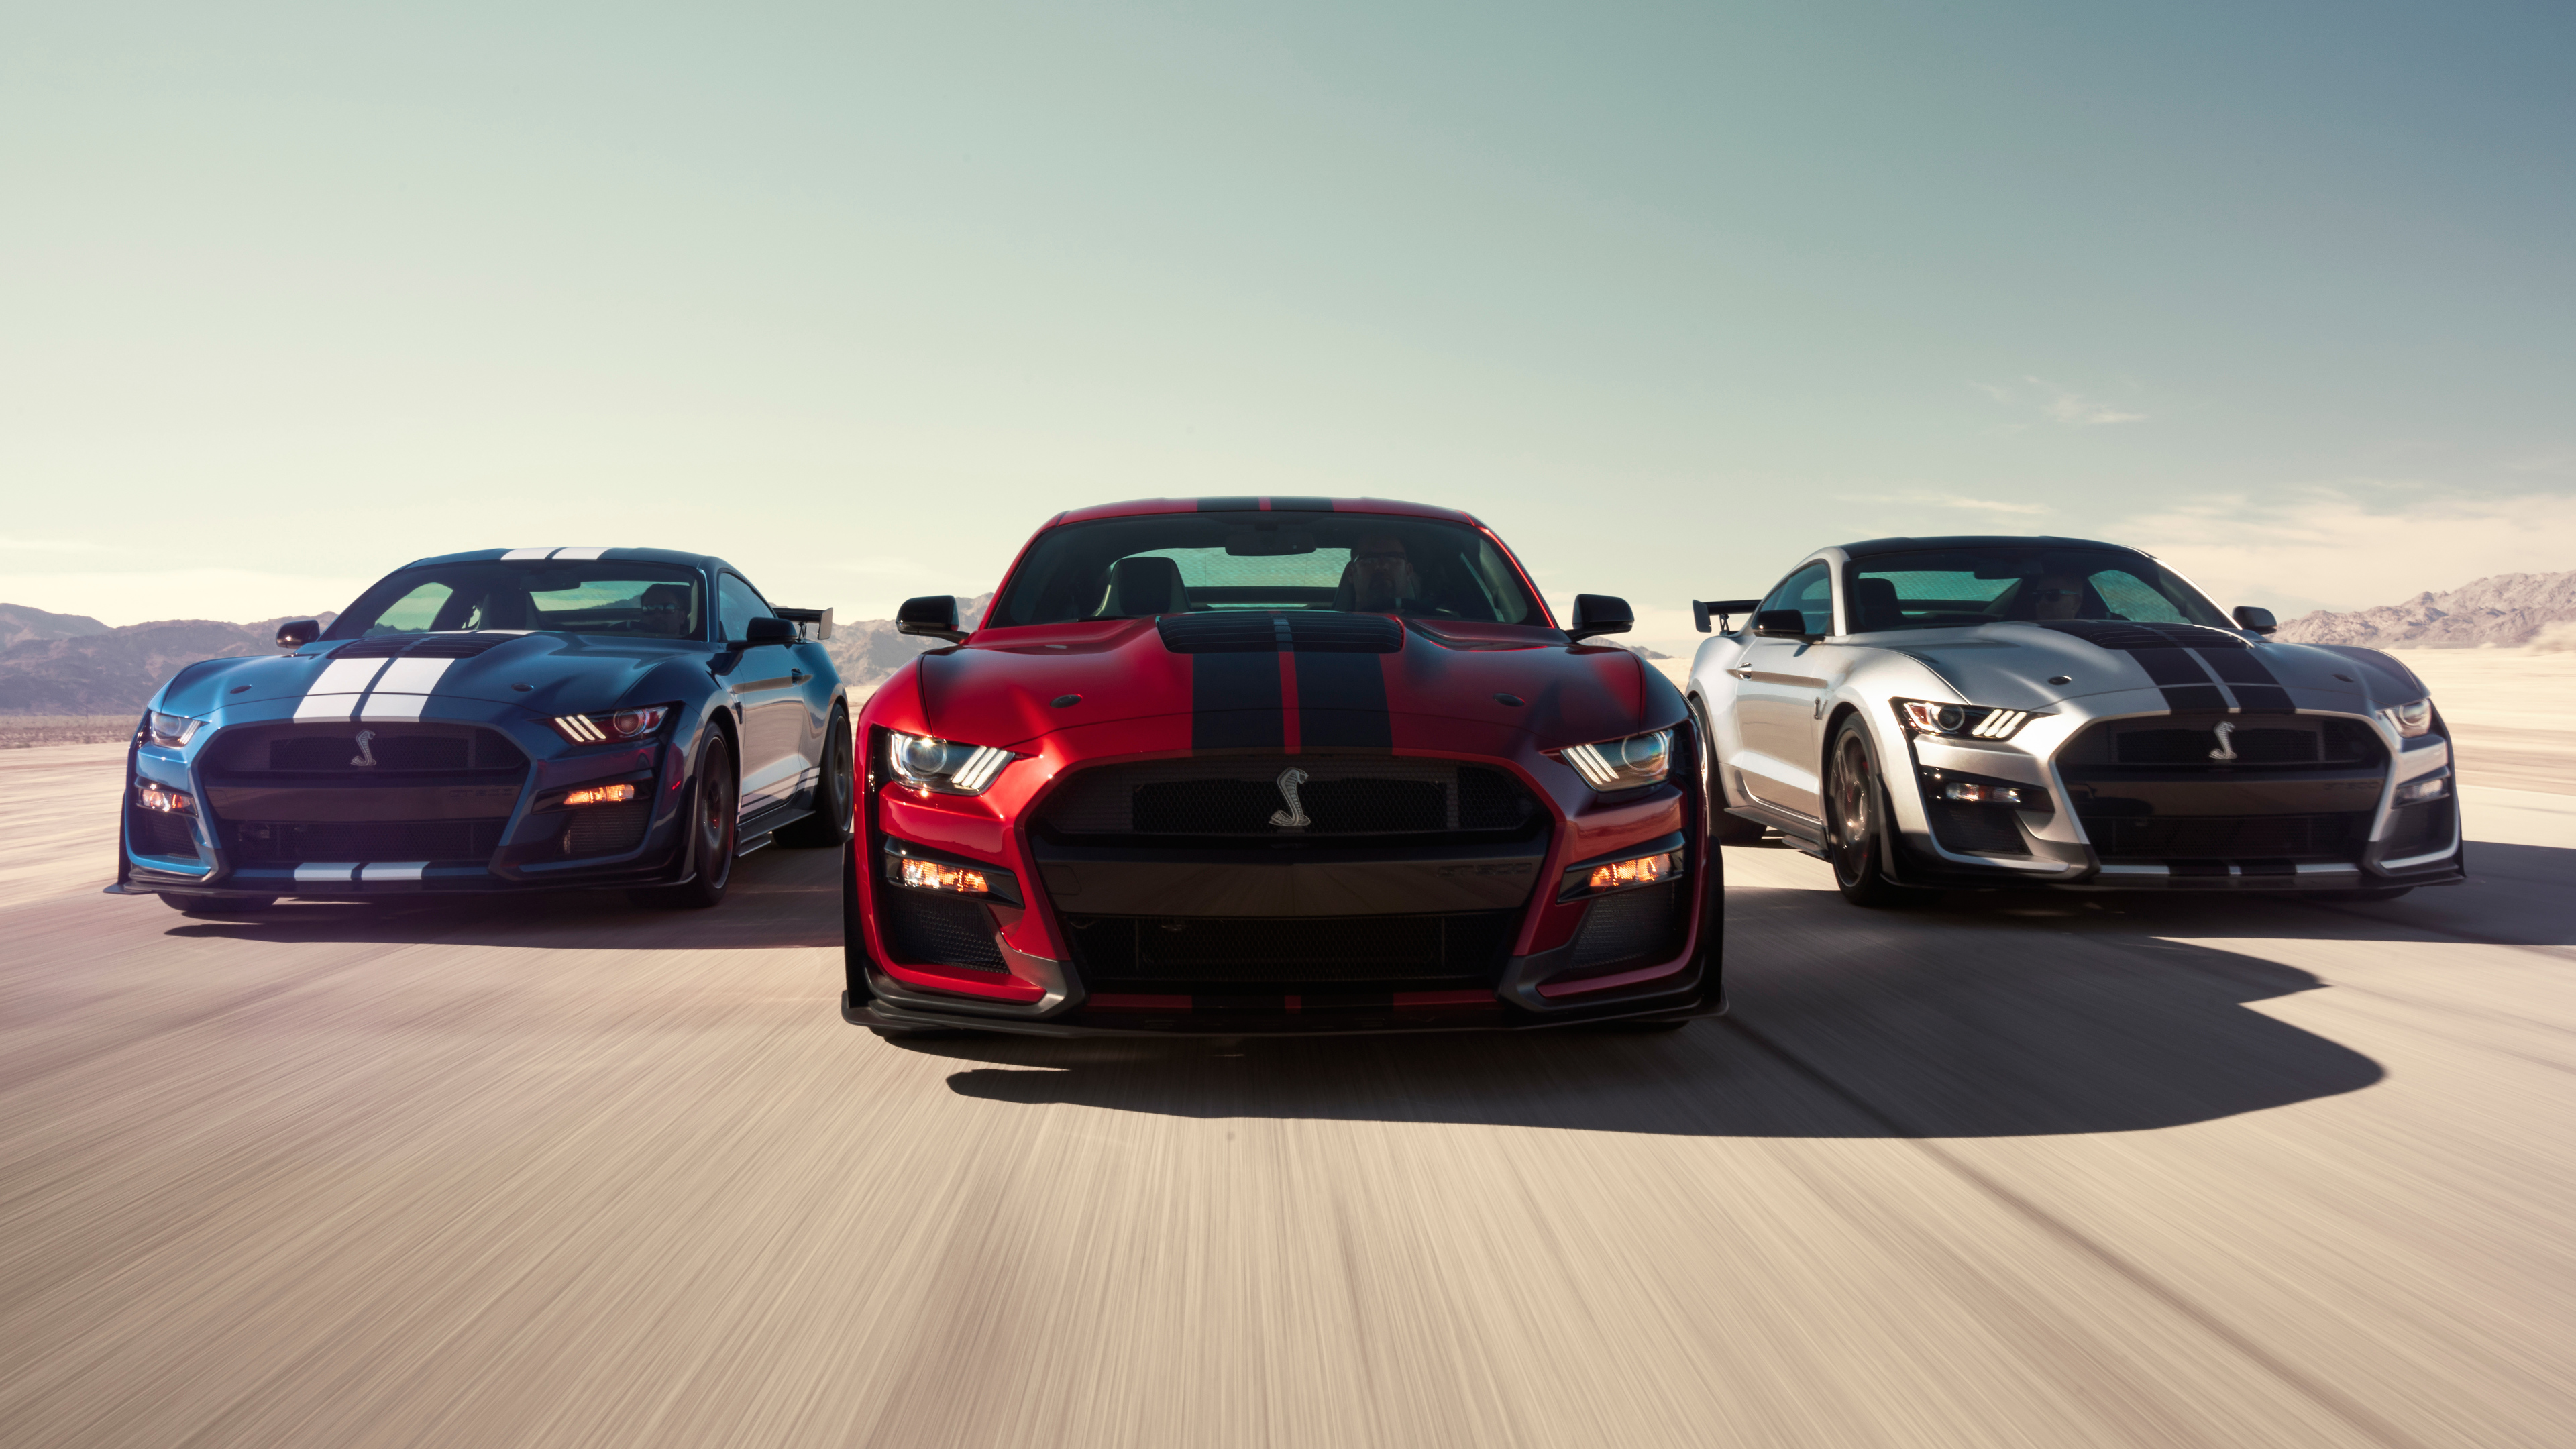 Wallpaper 4k 2020 Ford Mustang Shelby Gt500 4k 2020 Cars Wallpapers